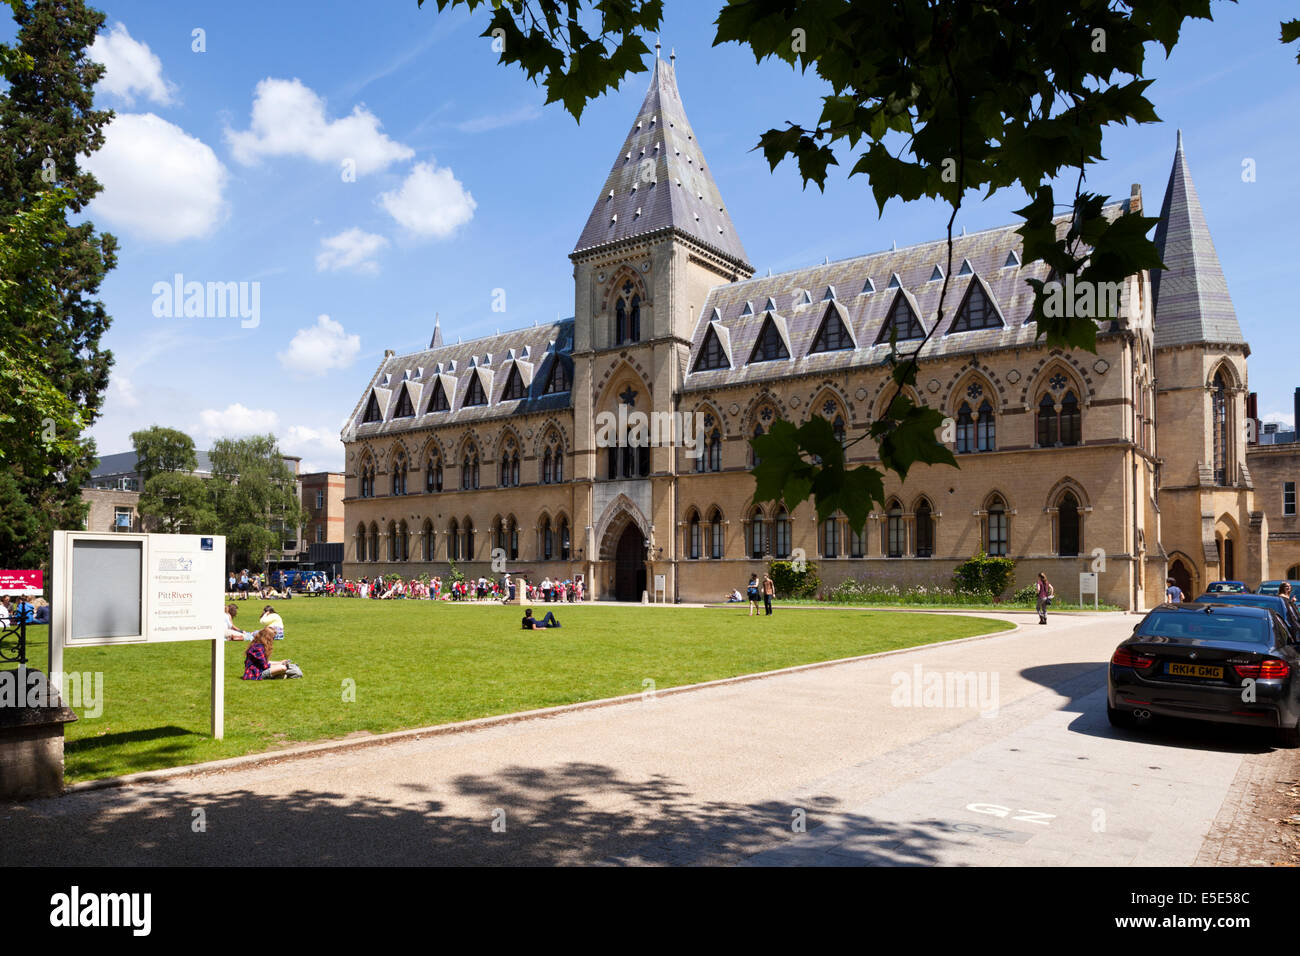 The Pitt Rivers Museum in the city of Oxford UK - Stock Image